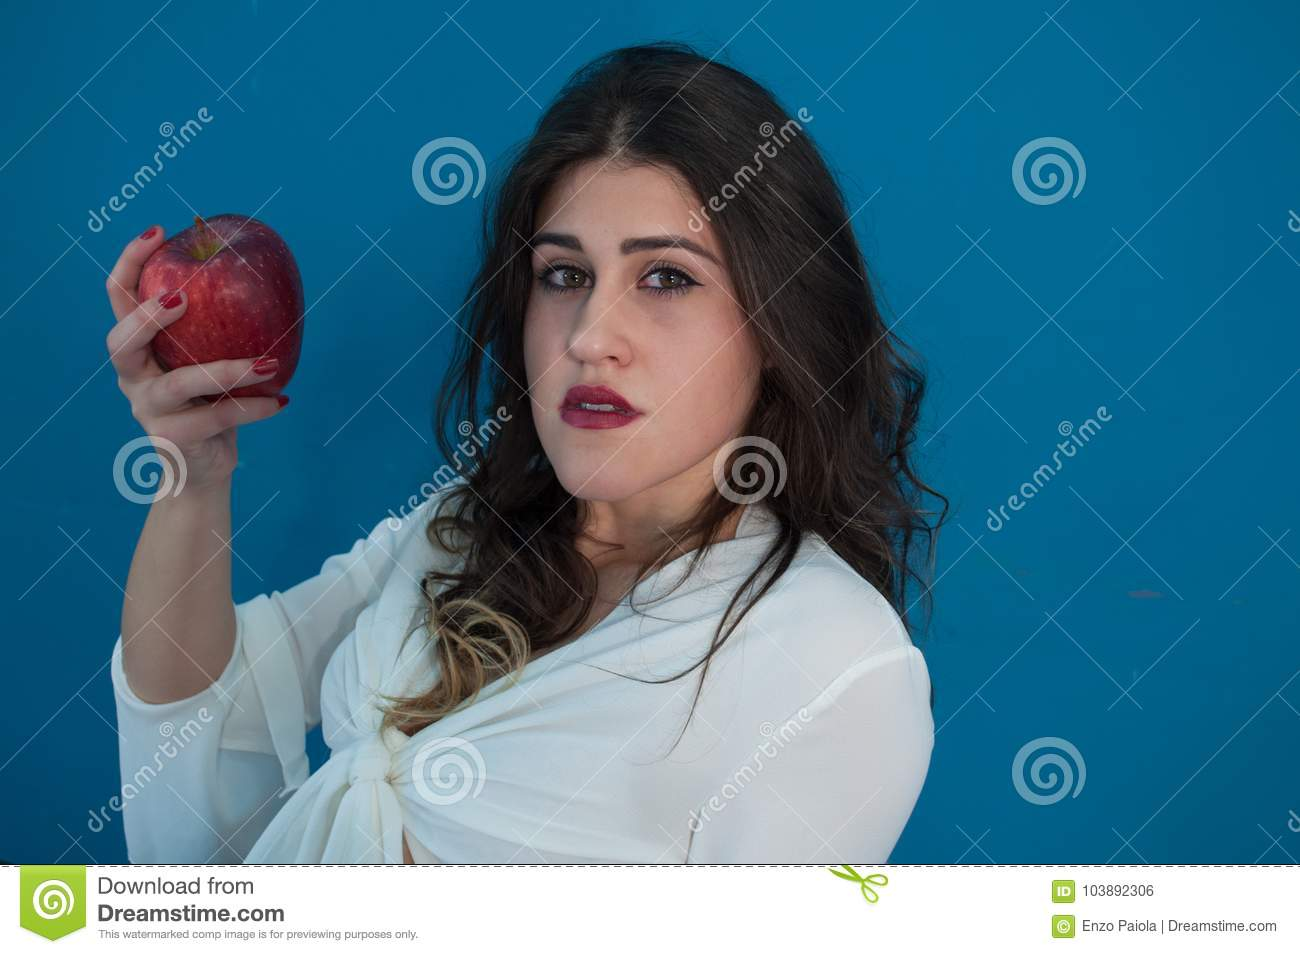 Studio photo with cute girl and apple